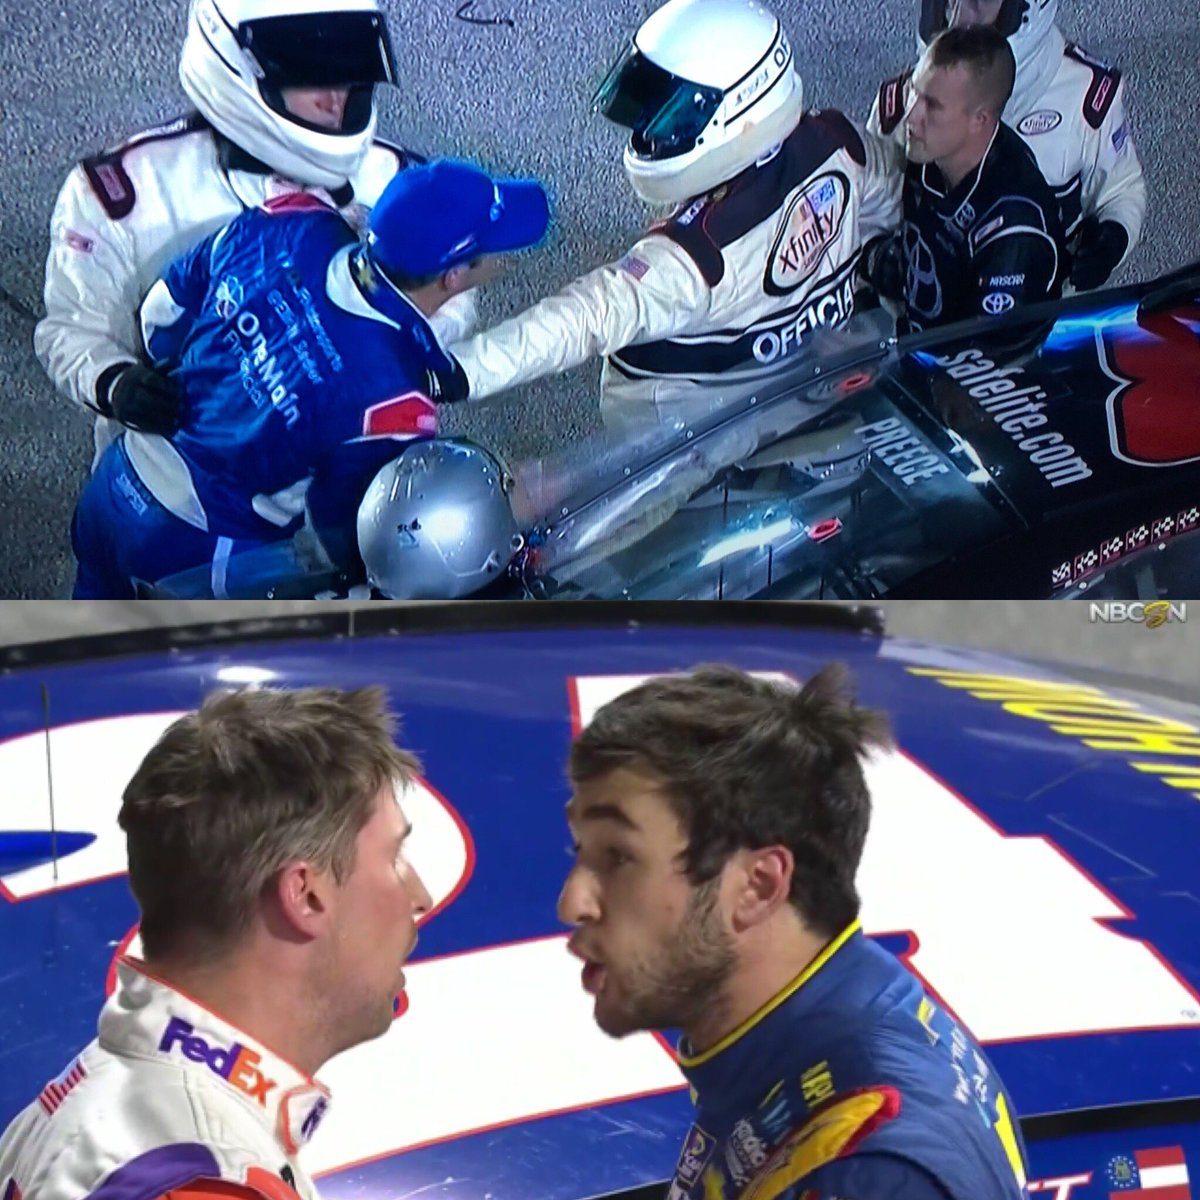 Did you know that in 2017, 100% of the sport's Elliotts got in a post-race shouting match with a JGR driver. #Wow #Fascinating<br>http://pic.twitter.com/kwYPIAqX2R